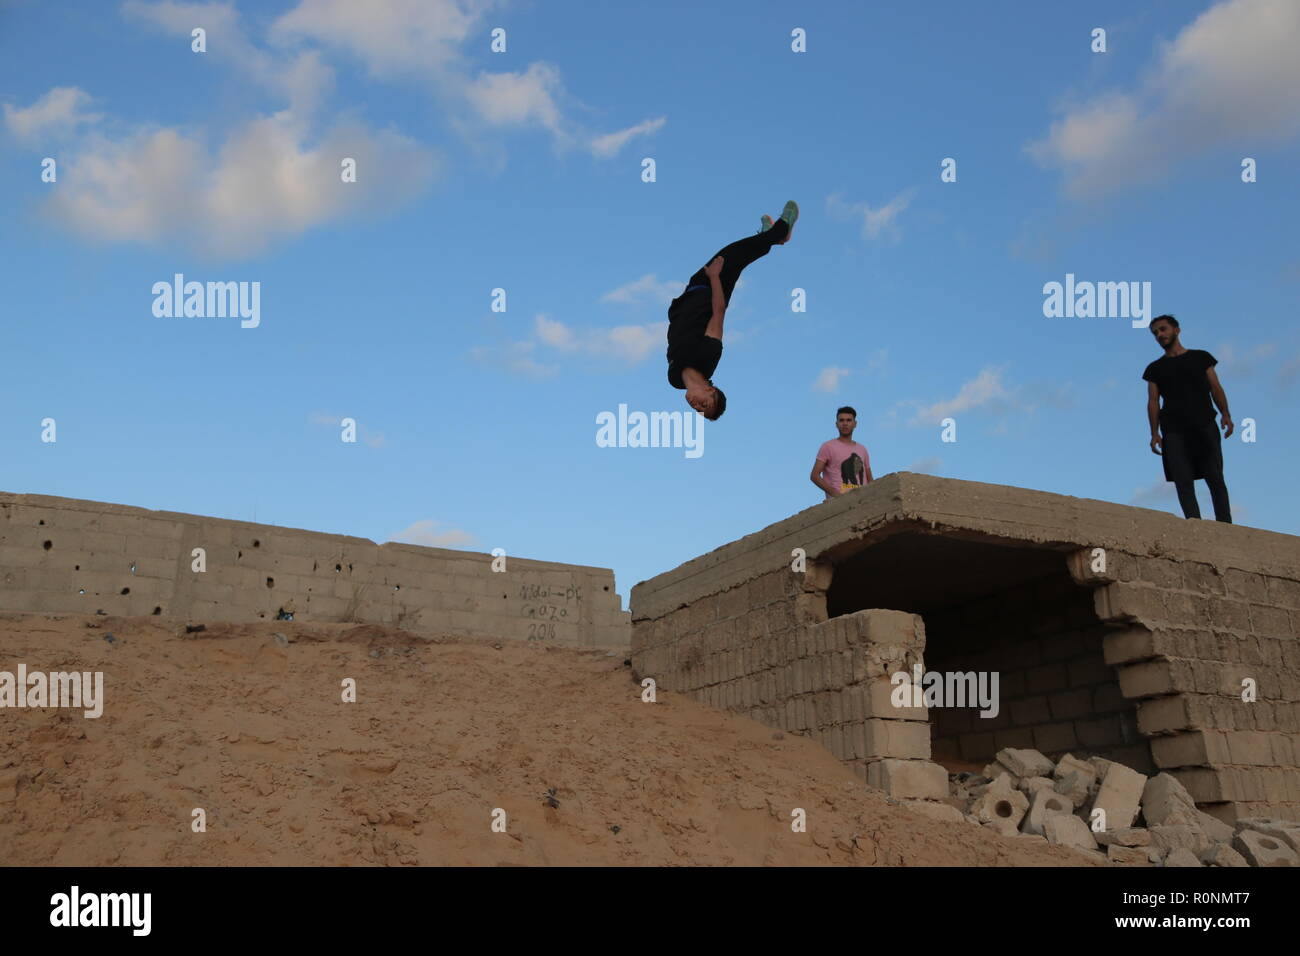 A young Palestinian man seen doing a backflip jump onto the sand hill  during their Parkour practice at the war-torn building in Gaza. Gaza has one of the highest youth unemployment rate in the world with over 80% of young people under the age of 30 being unemployed, Parkour is one of the ways for the youth to spend their long afternoons and keep themselves fit. - Stock Image